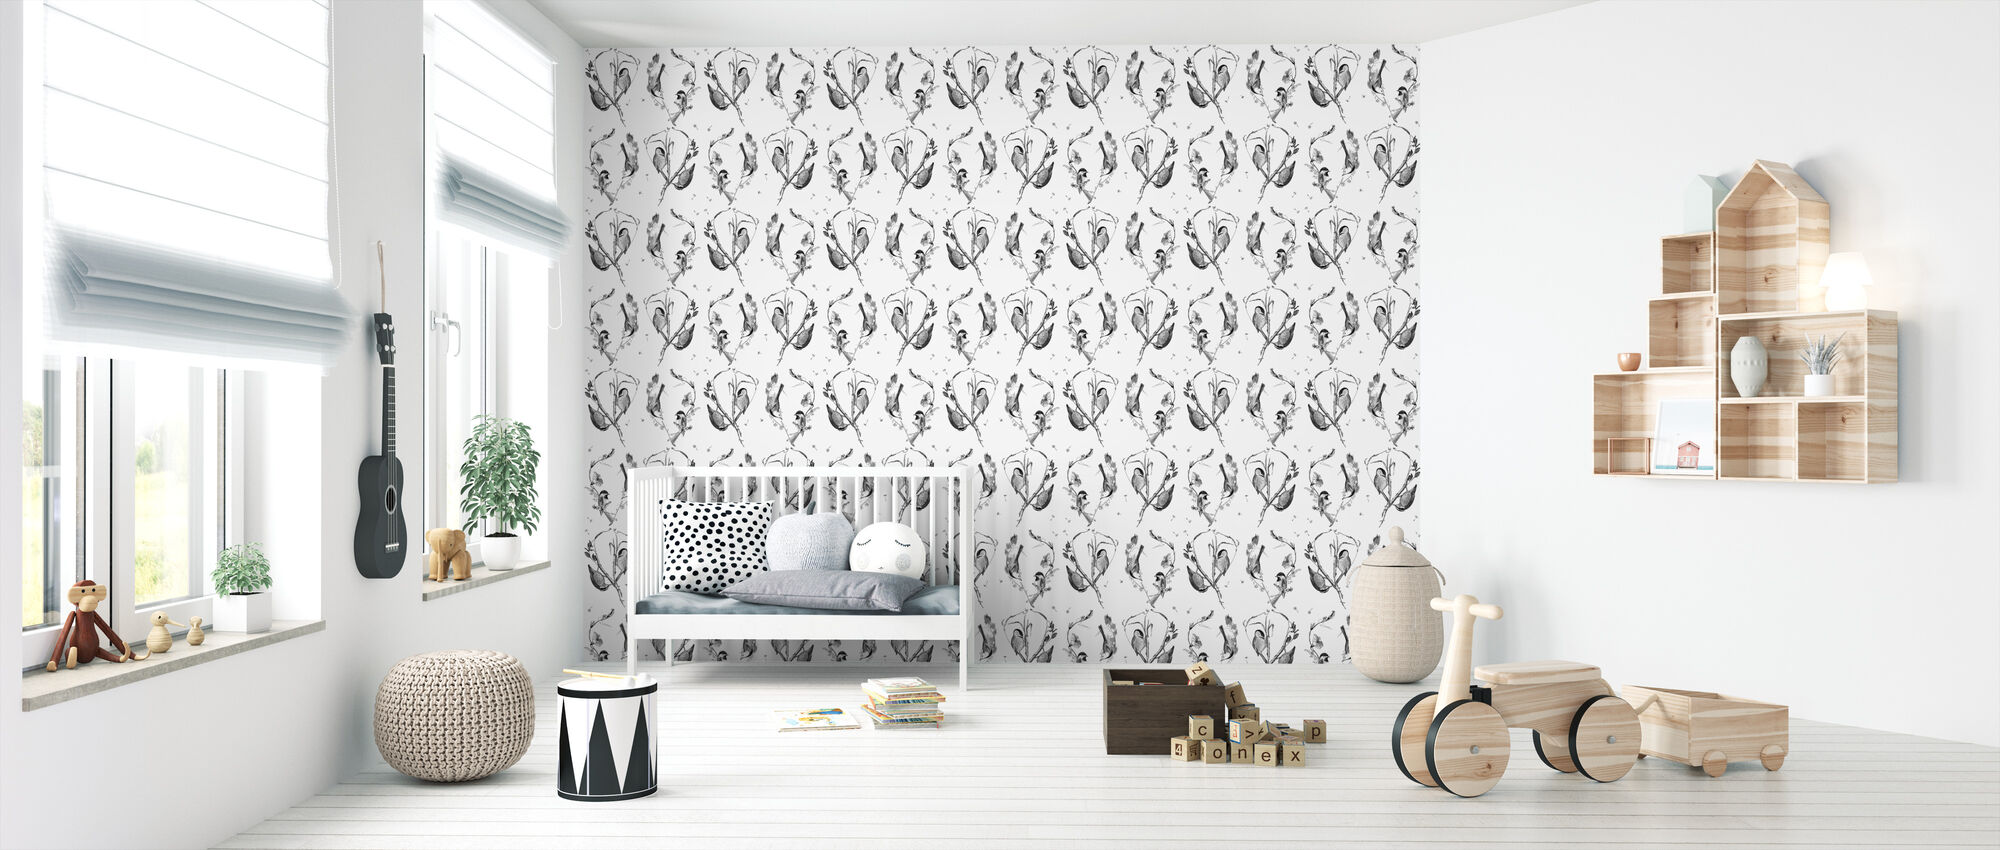 Cuckoo's Nest - Wallpaper - Nursery